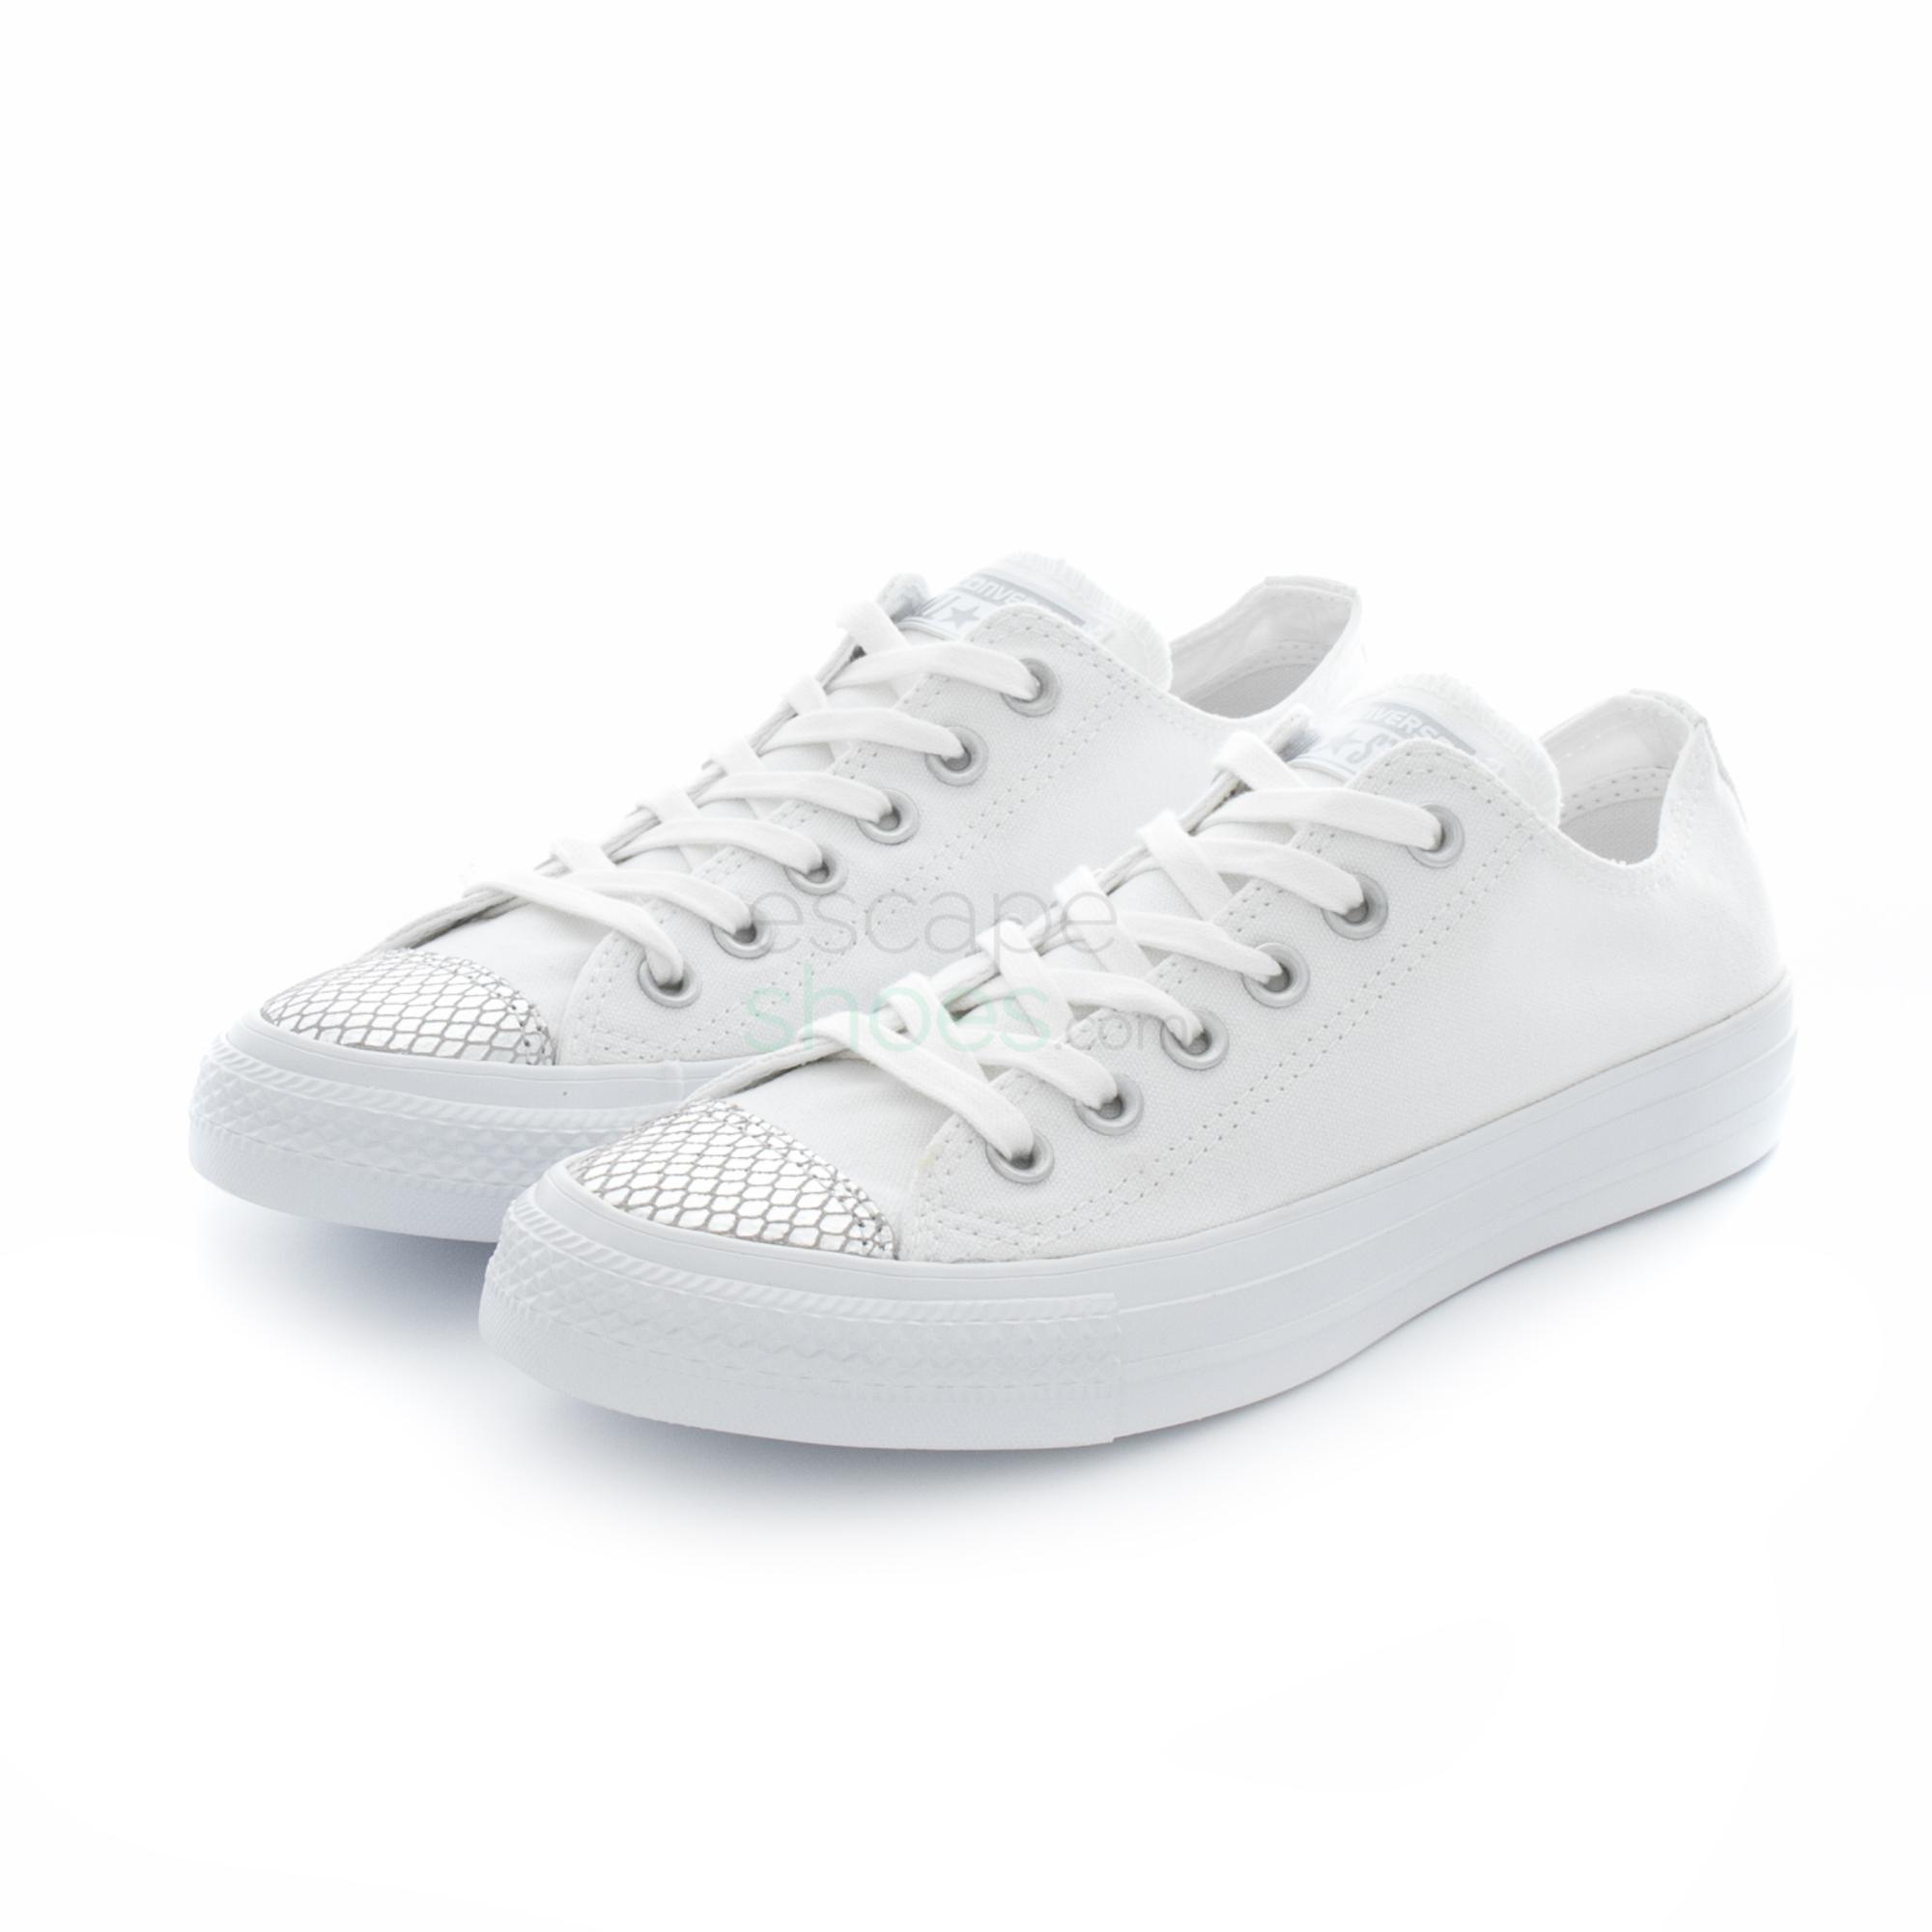 Buy your Sneakers CONVERSE Chuck Taylor All Star 555816C White ... d2e4575b29